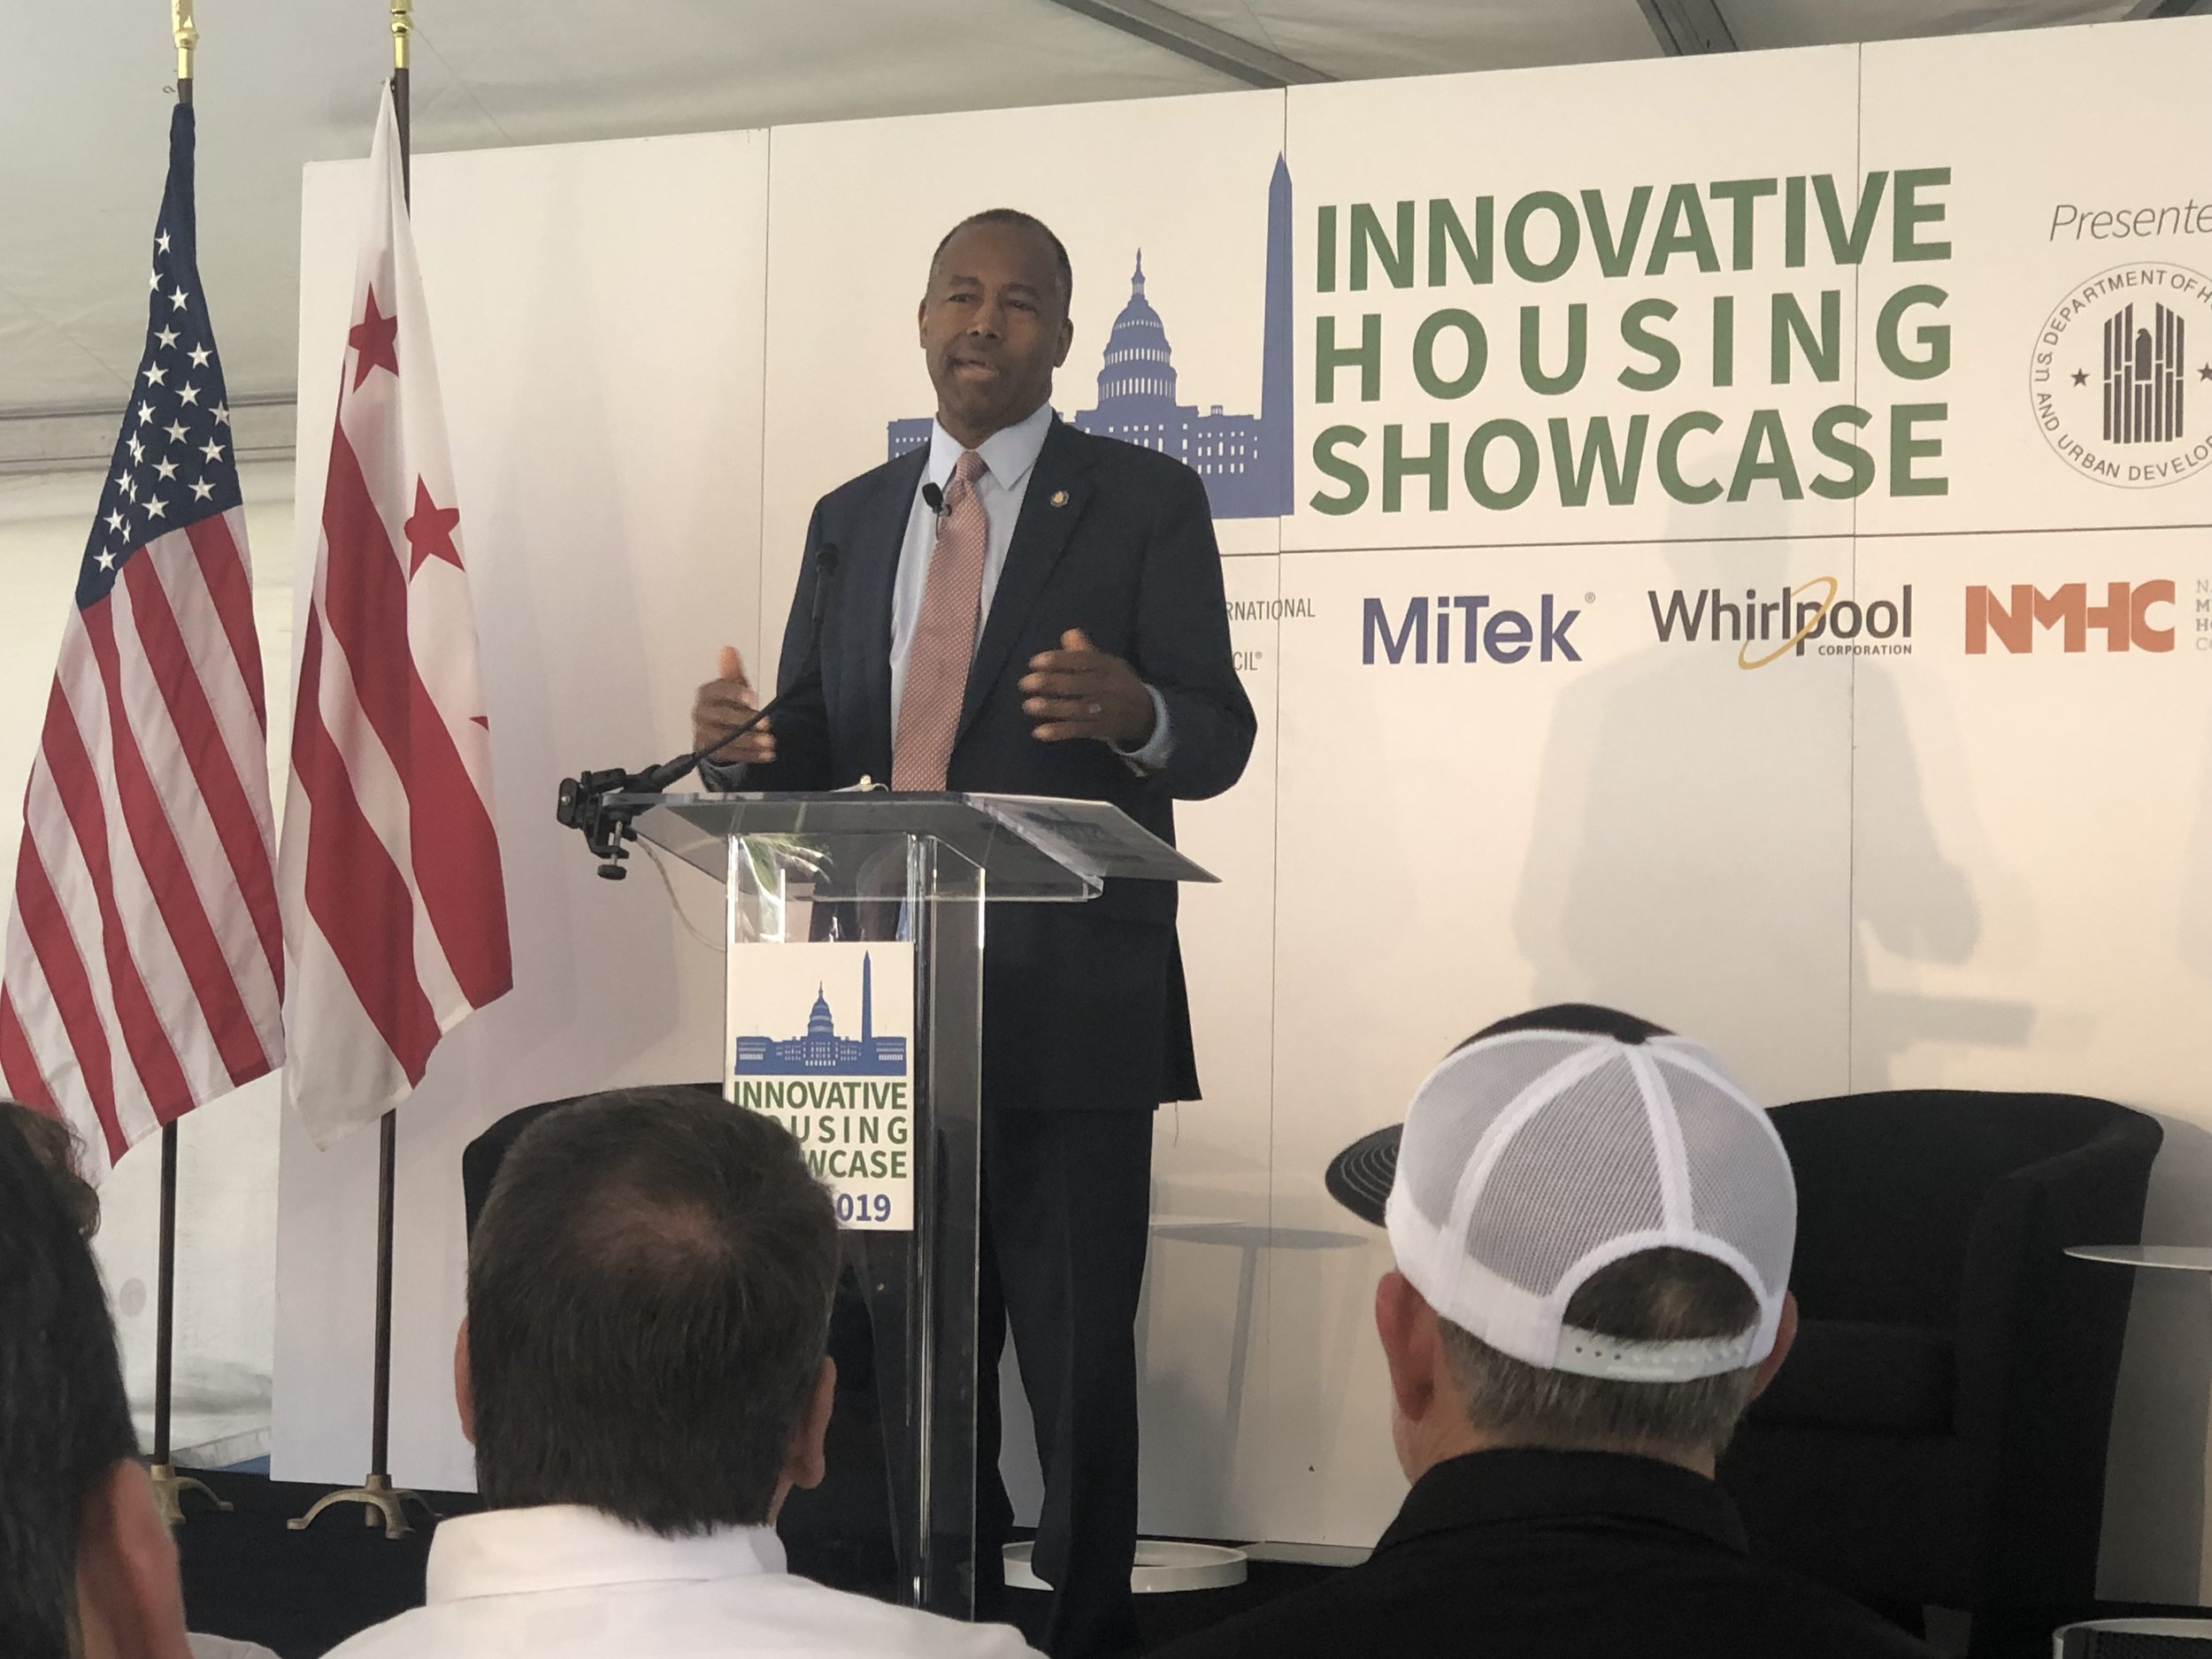 United States Secretary of Housing and Urban Development (HUD), Ben Carson, highlighting the importance of innovation and preparedness in the nation's affordable housing crisis on Monday's event.